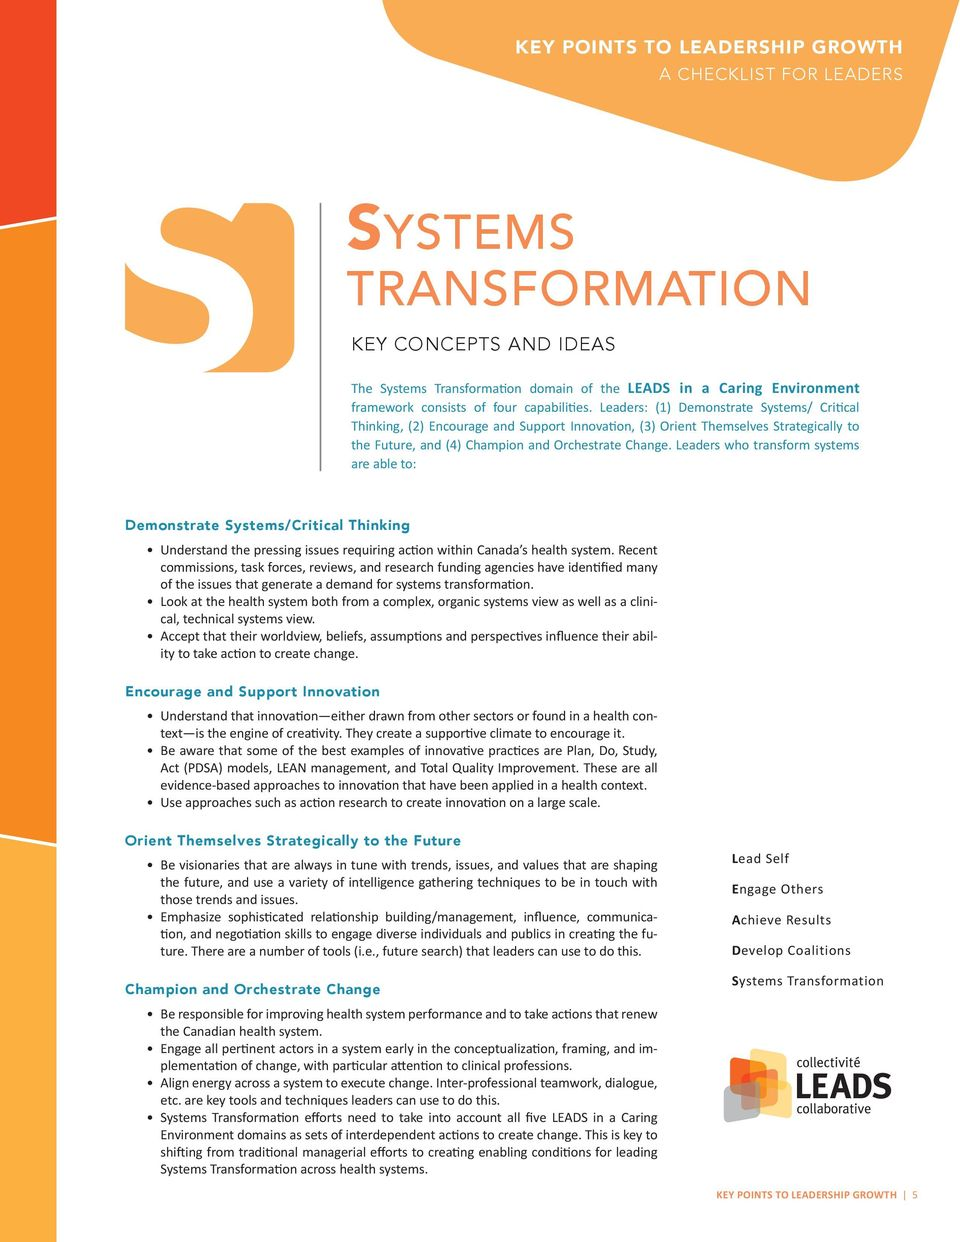 Leaders who transform systems are able to: Demonstrate Systems/Critical Thinking Understand the pressing issues requiring action within Canada s health system.